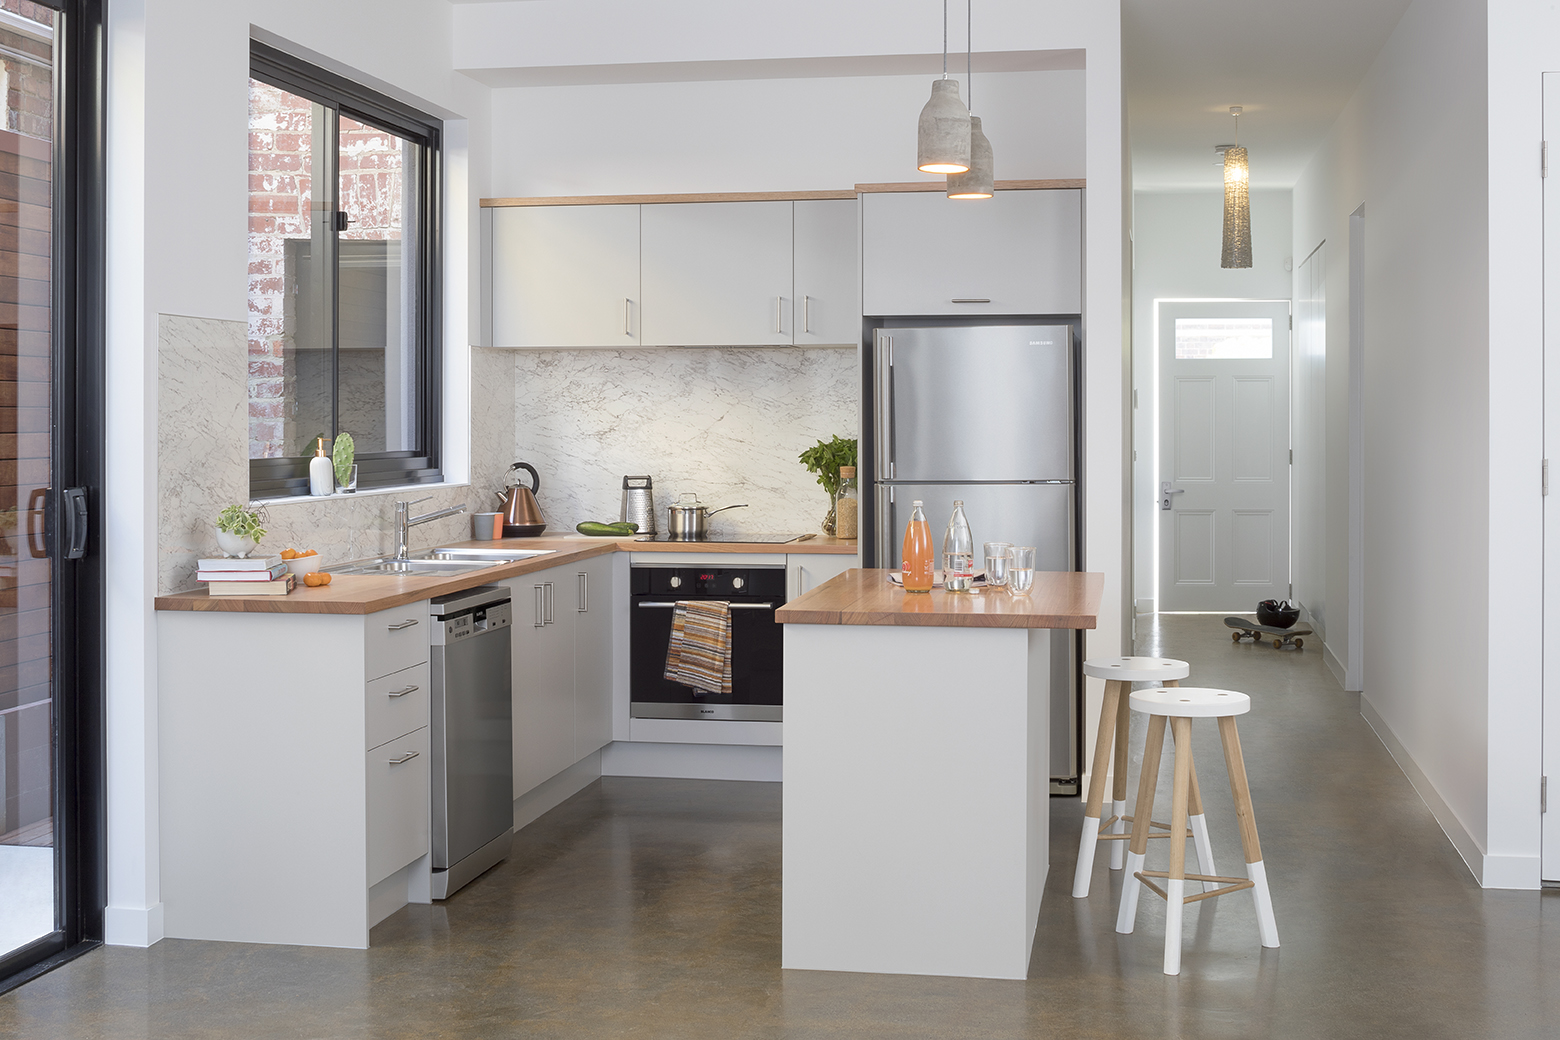 Apartment Living Kitchen Inspiration And Ideas Kaboodle Kitchen